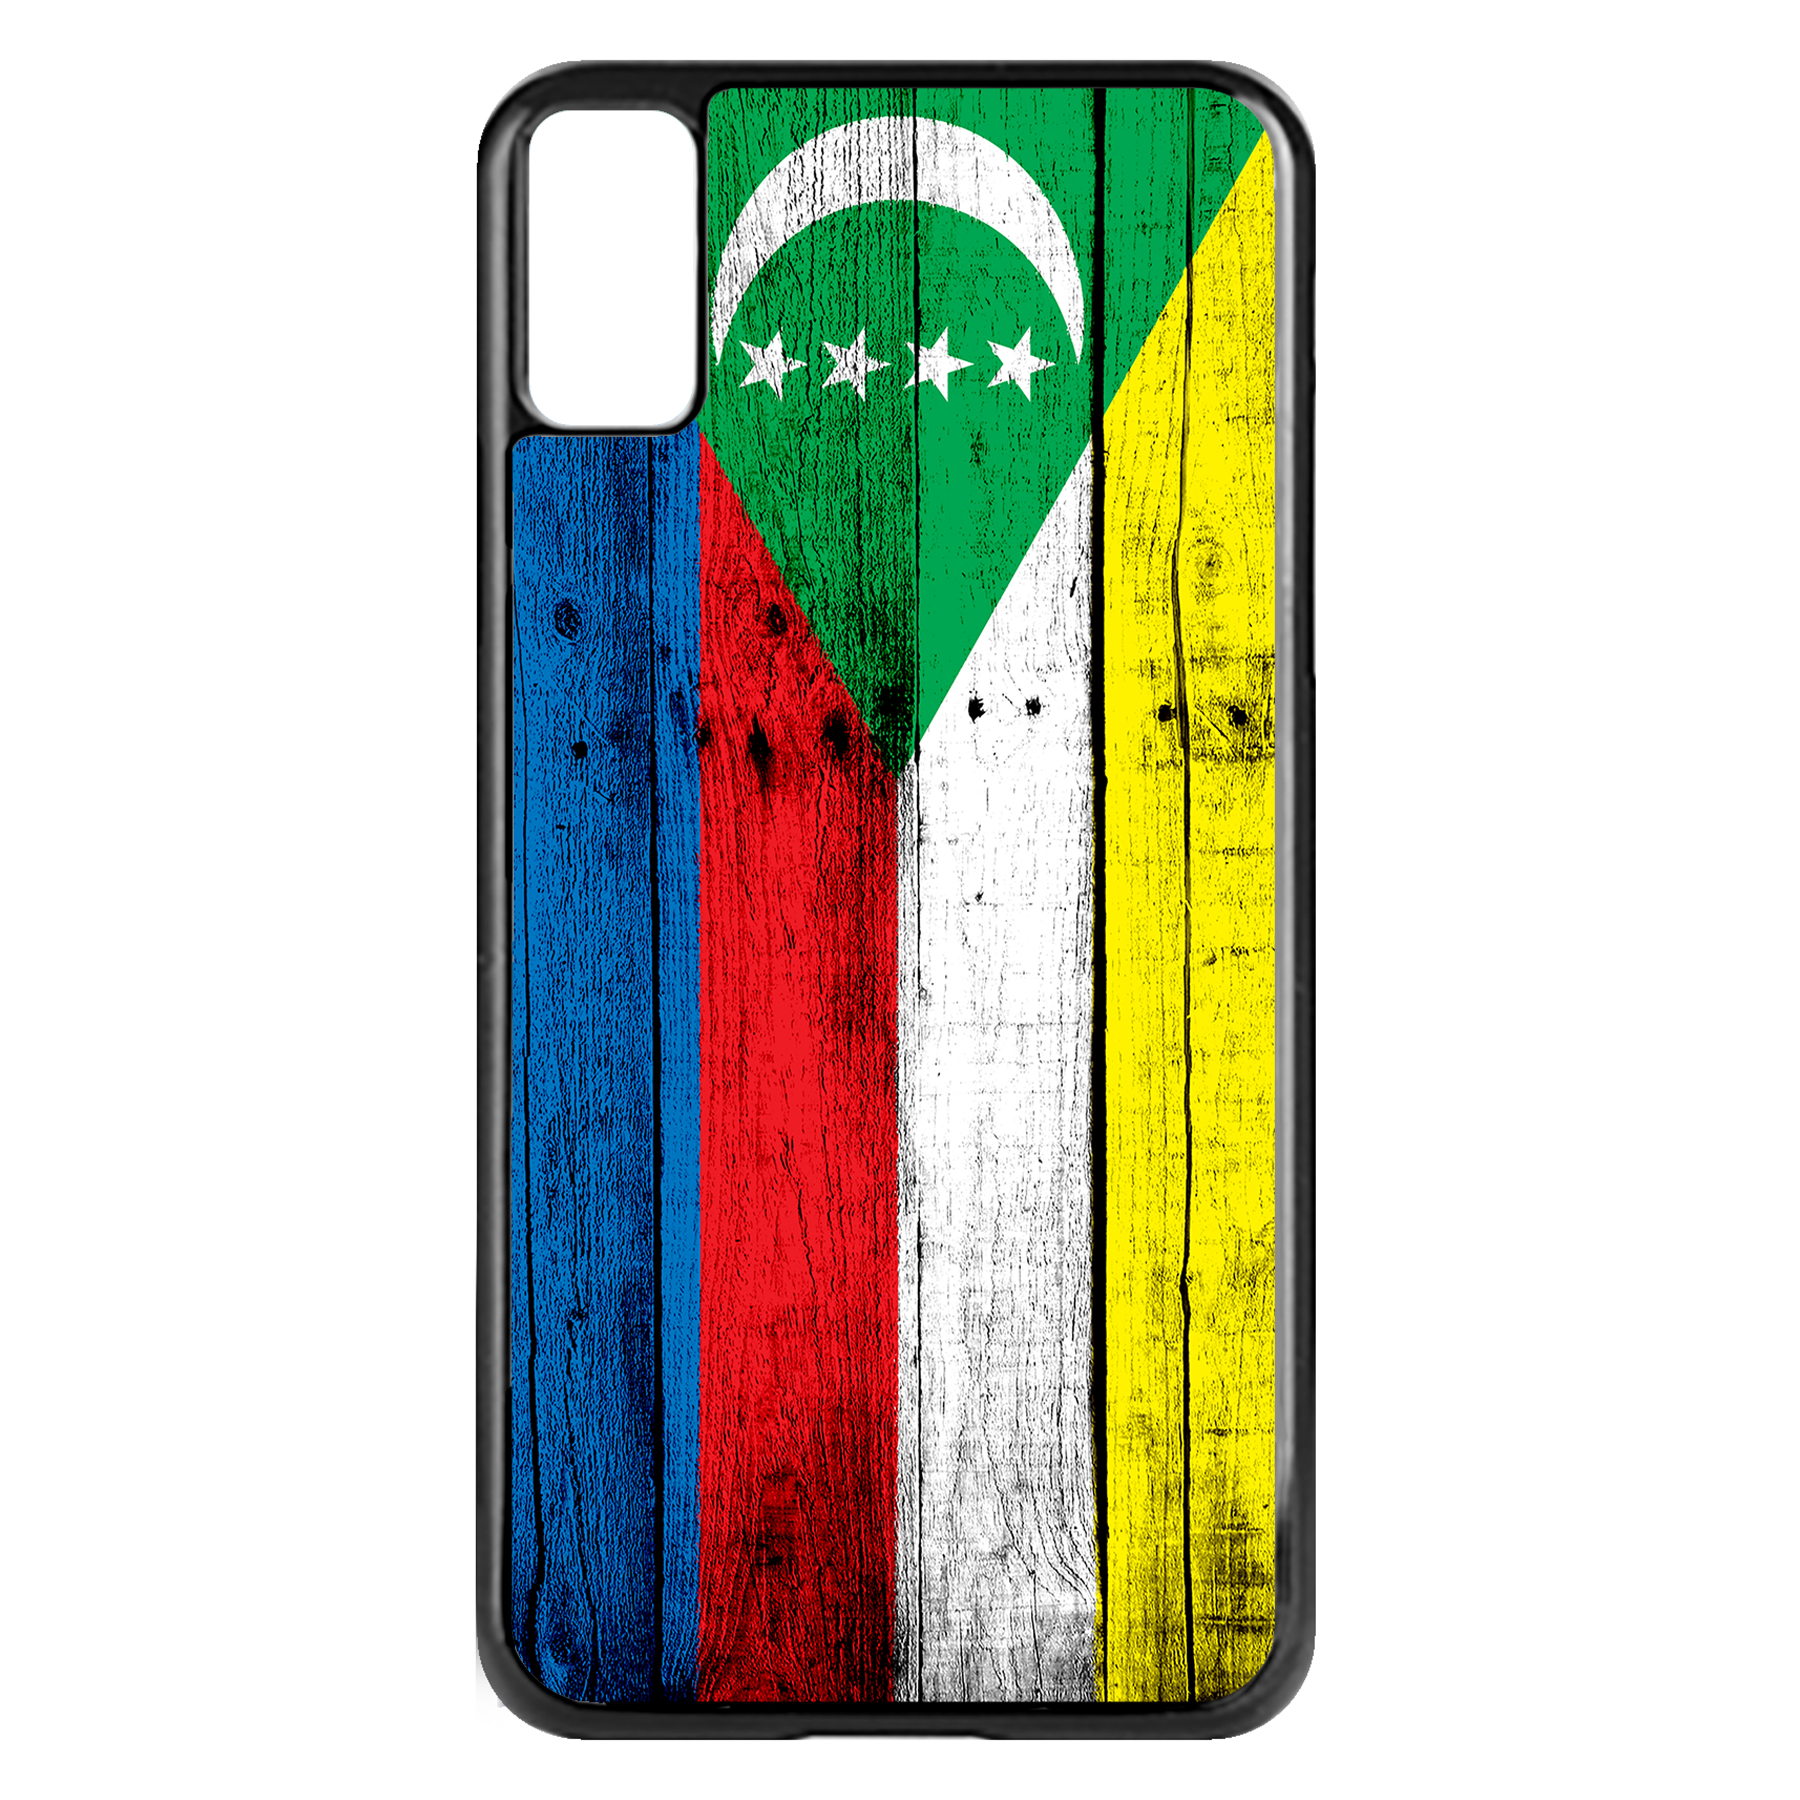 Apple-iPhone-Case-with-Flag-of-Comoros-Comorian-Many-Design-Options thumbnail 3